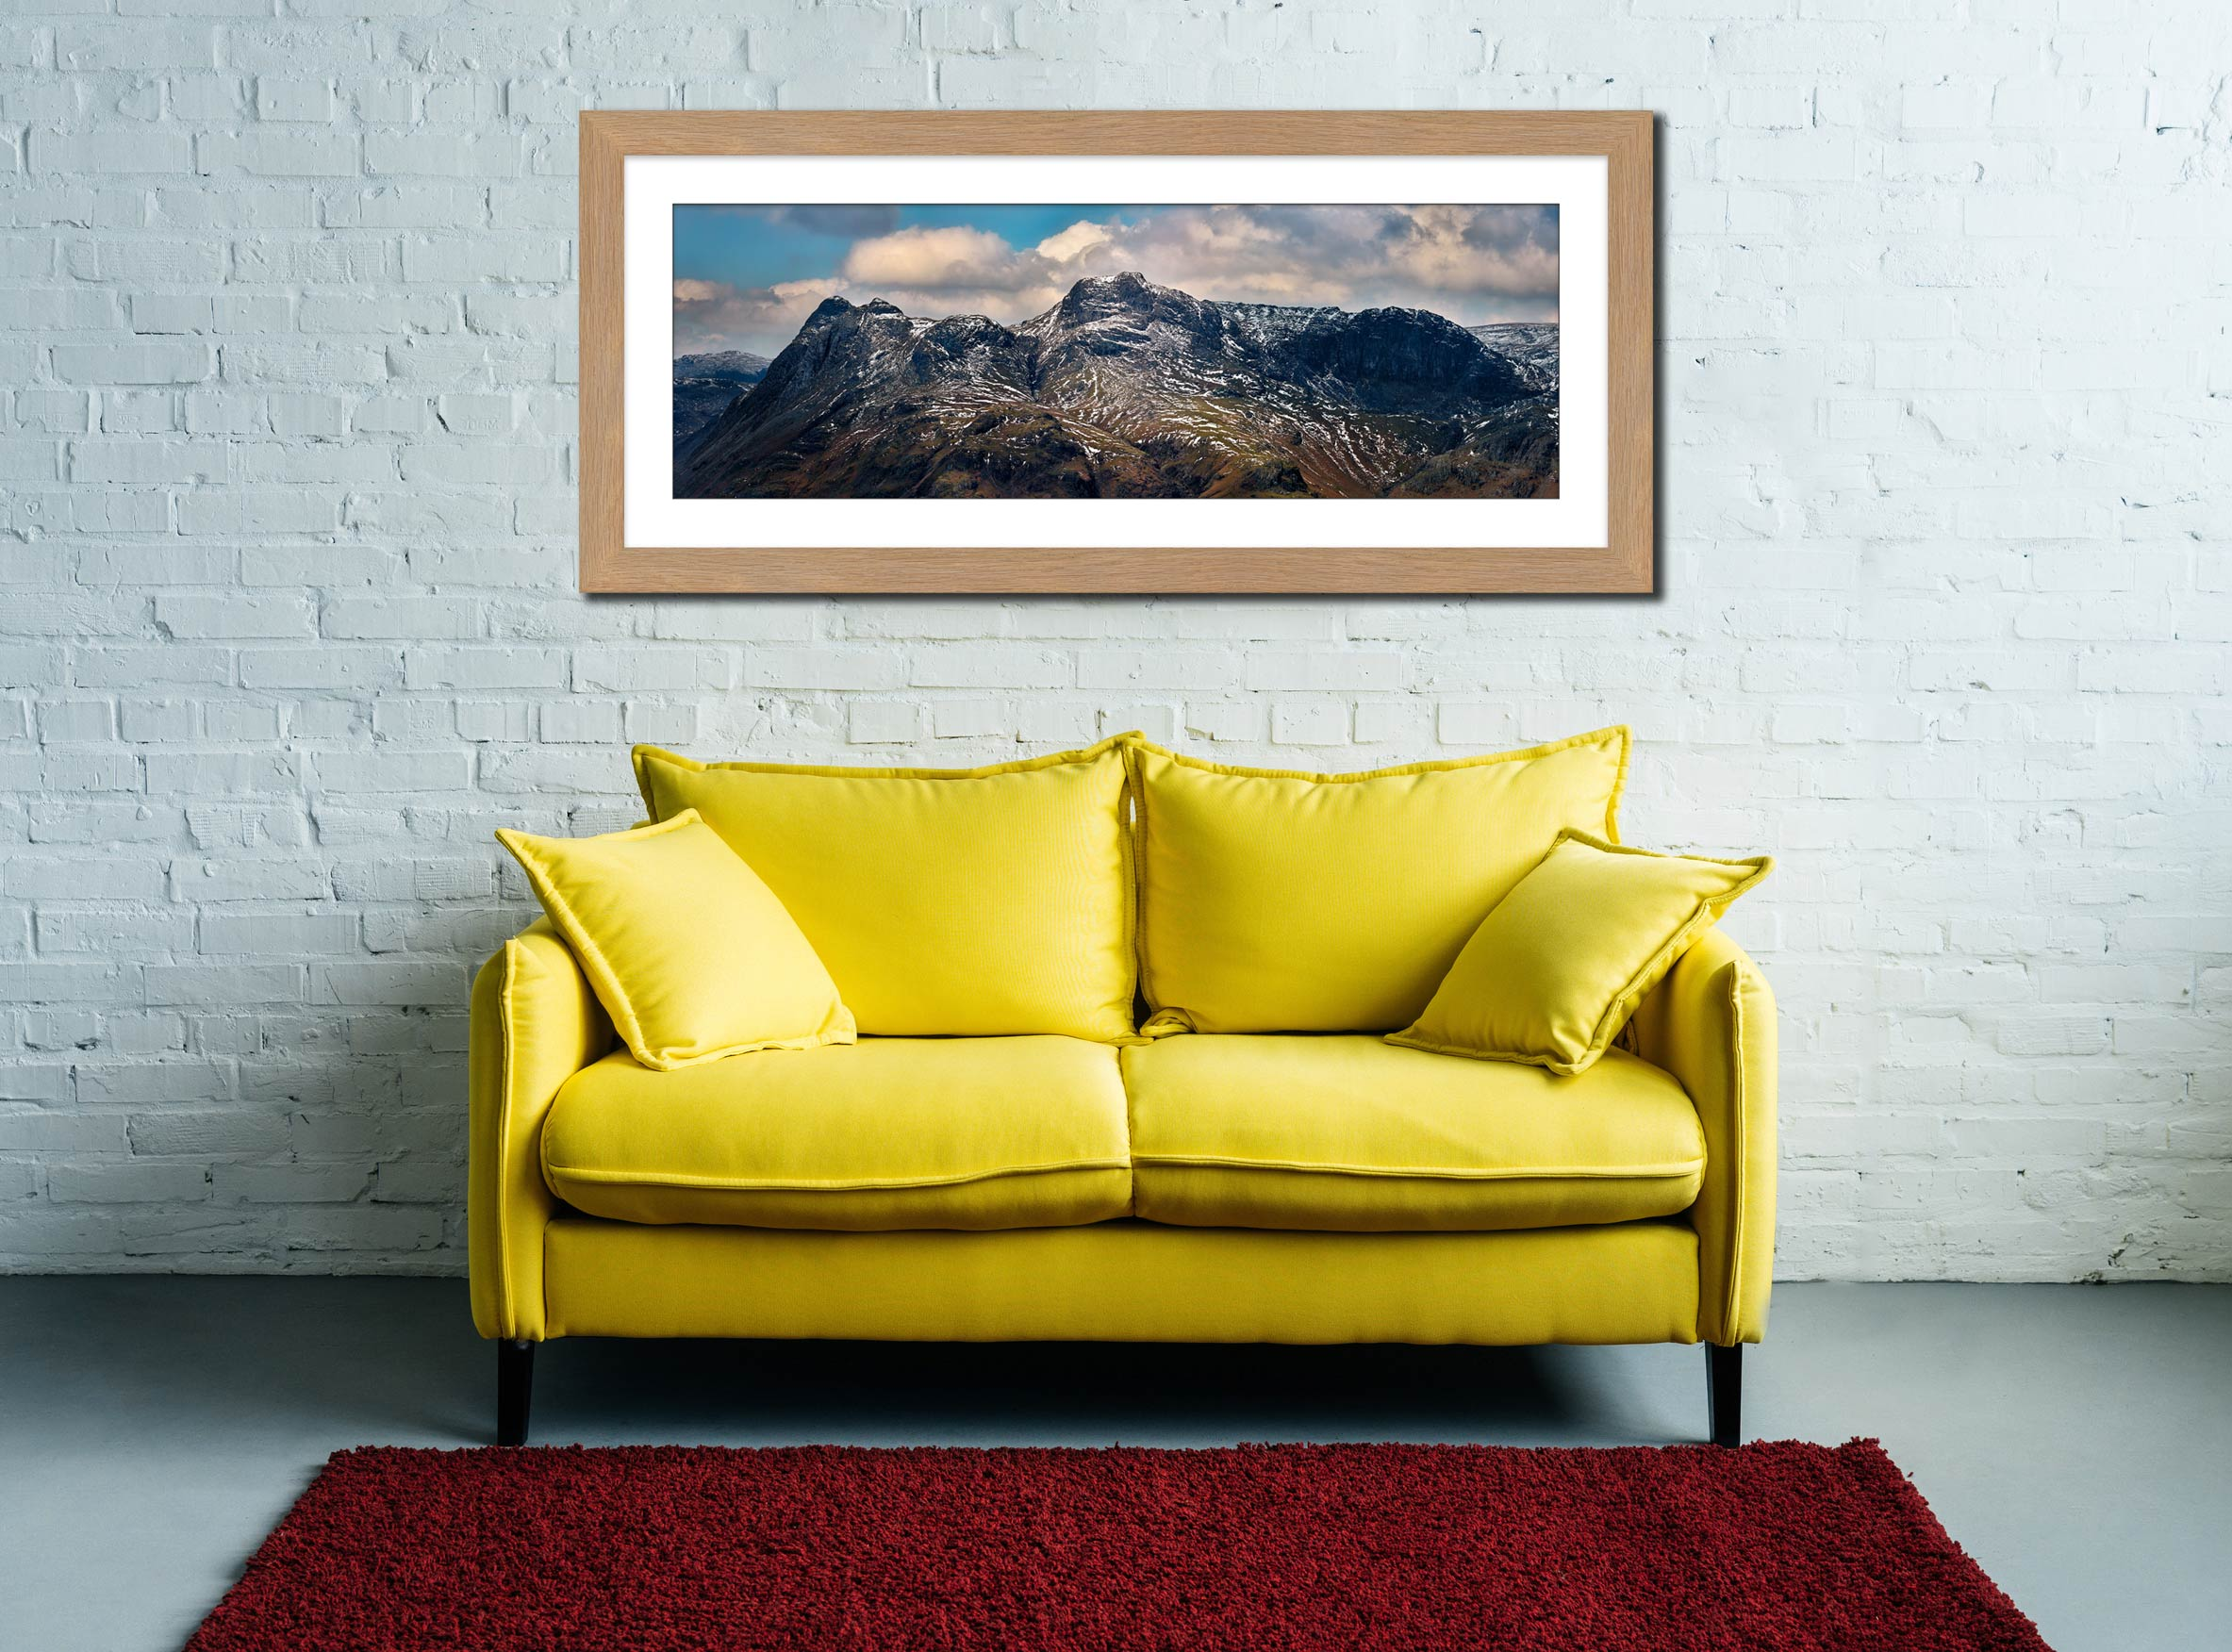 The Langdales and Pavey Ark - Framed Print with Mount on Wall